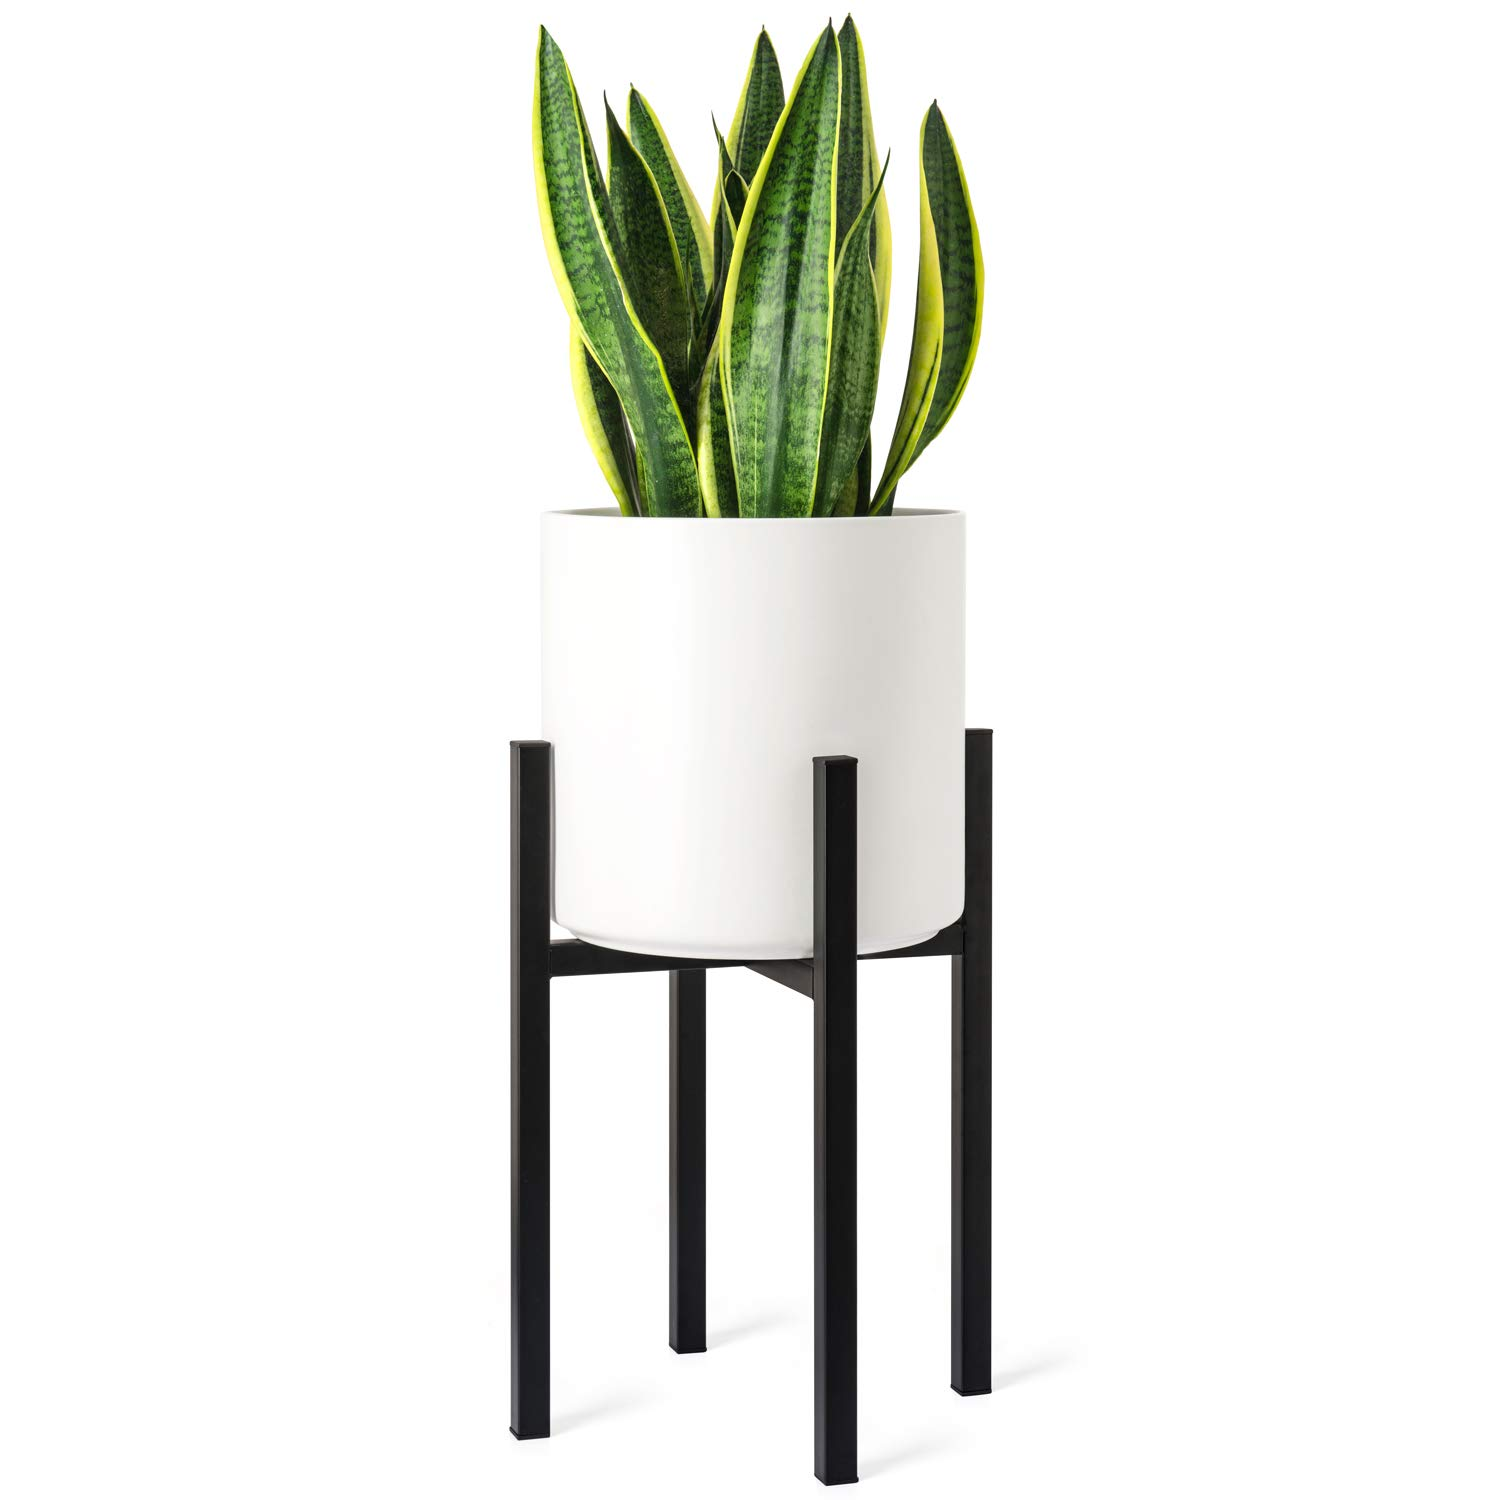 Mkono Plant Stand Mid Century Modern Tall Flower Pot Stands Indoor Outdoor Metal Potted Plant Holder Plants Display Rack Fits Up To 10 Inch Planter Planter Not Included Amazon Com Au Lawn Garden